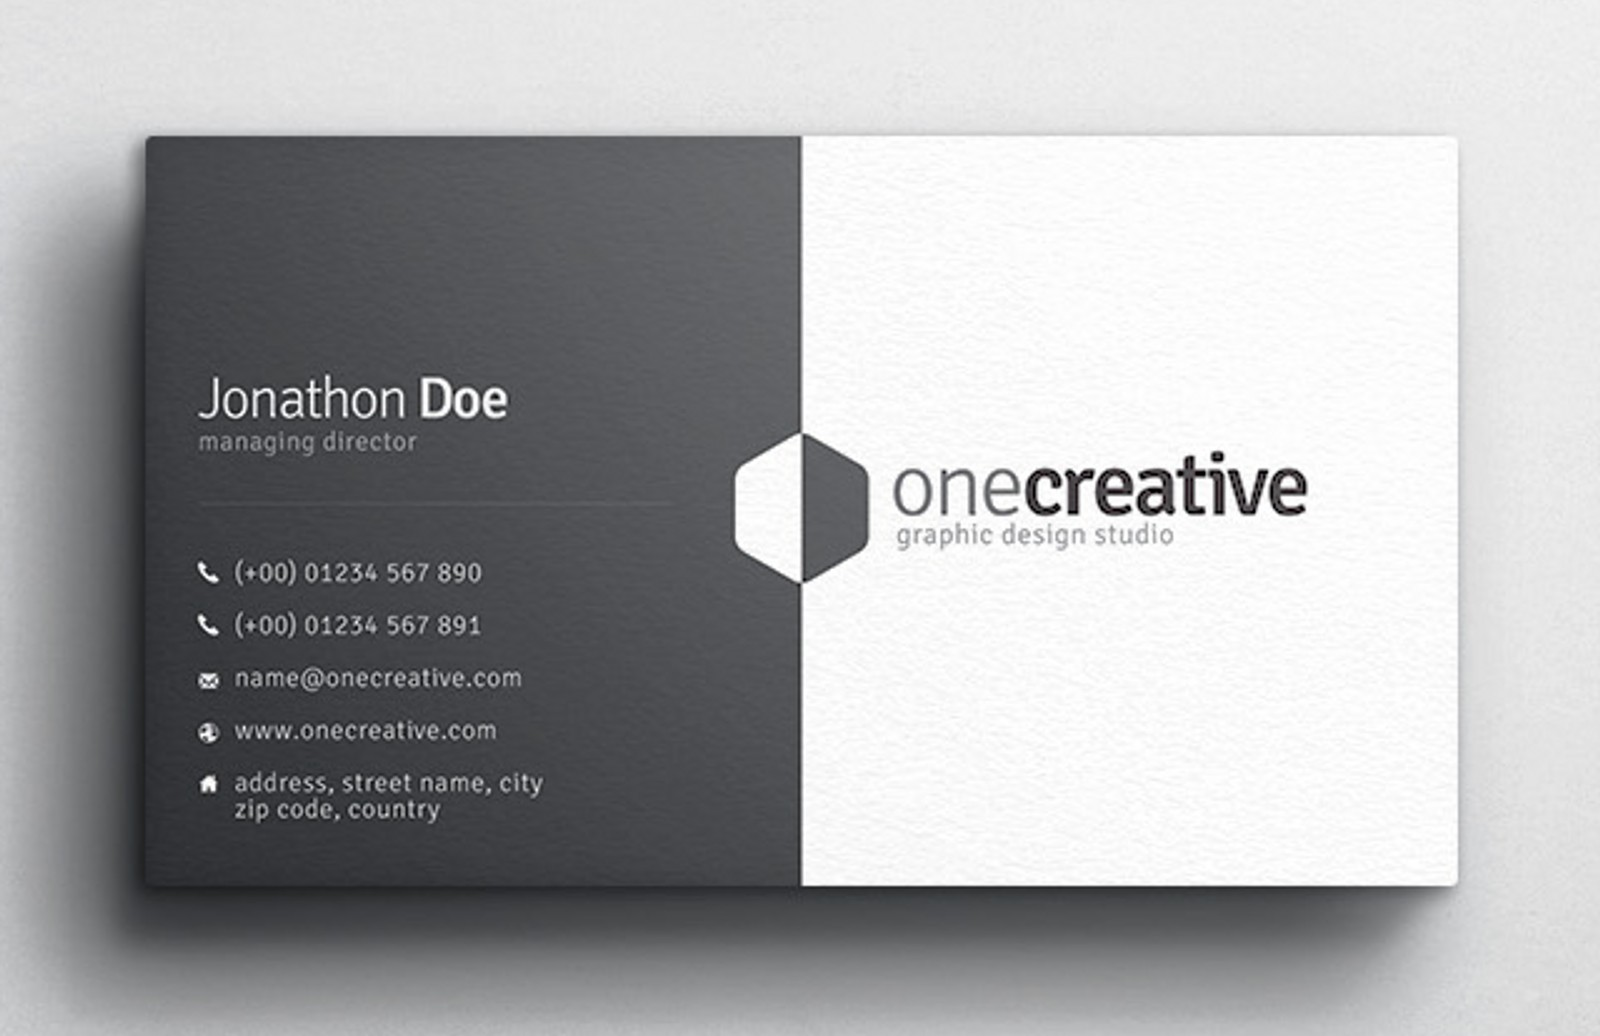 Duo Business Card Design Medialoot - Business card design template